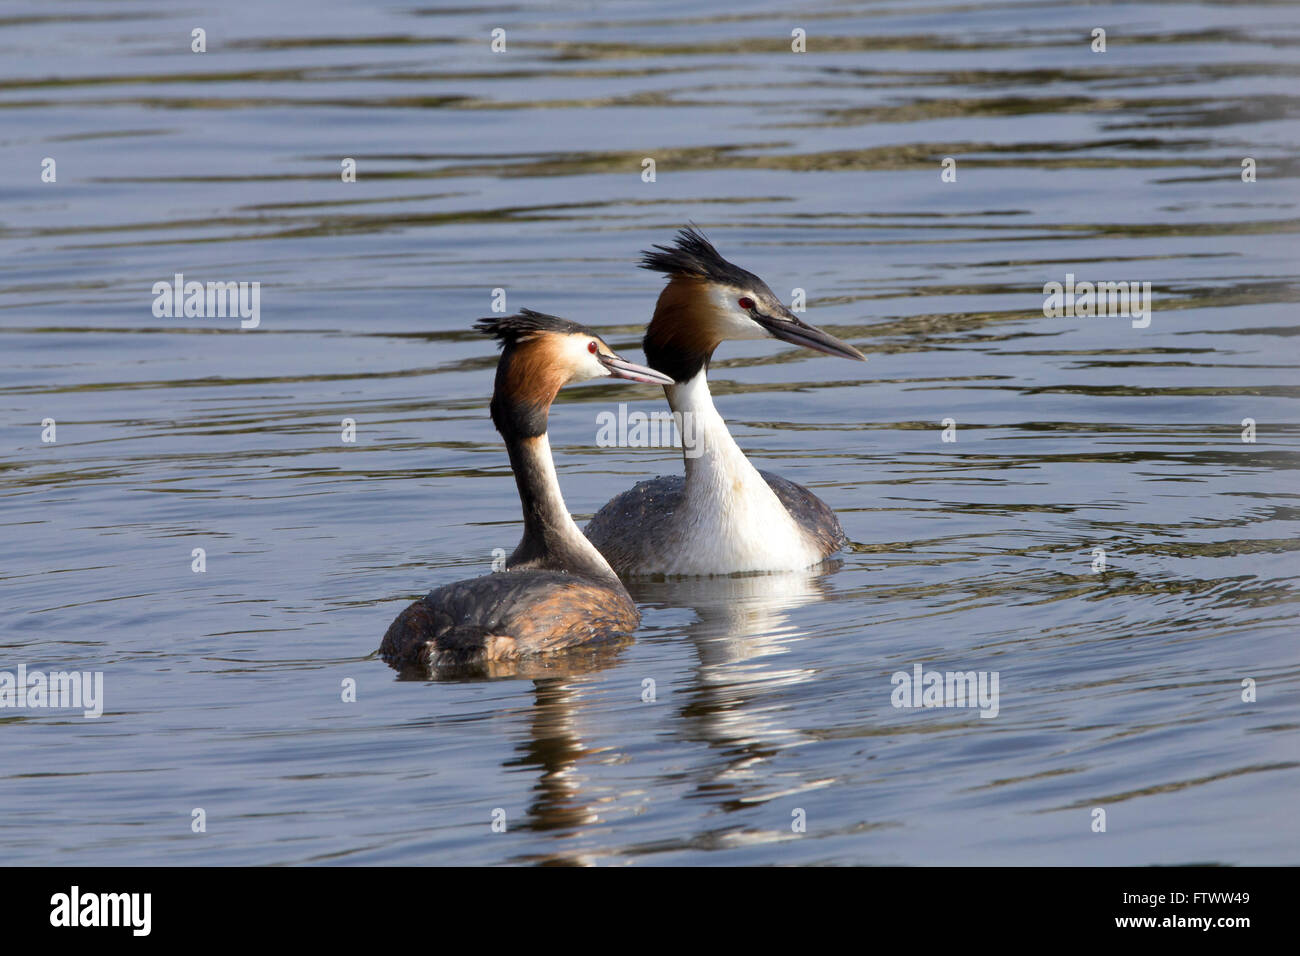 Great crested grebes in courtship display - Stock Image